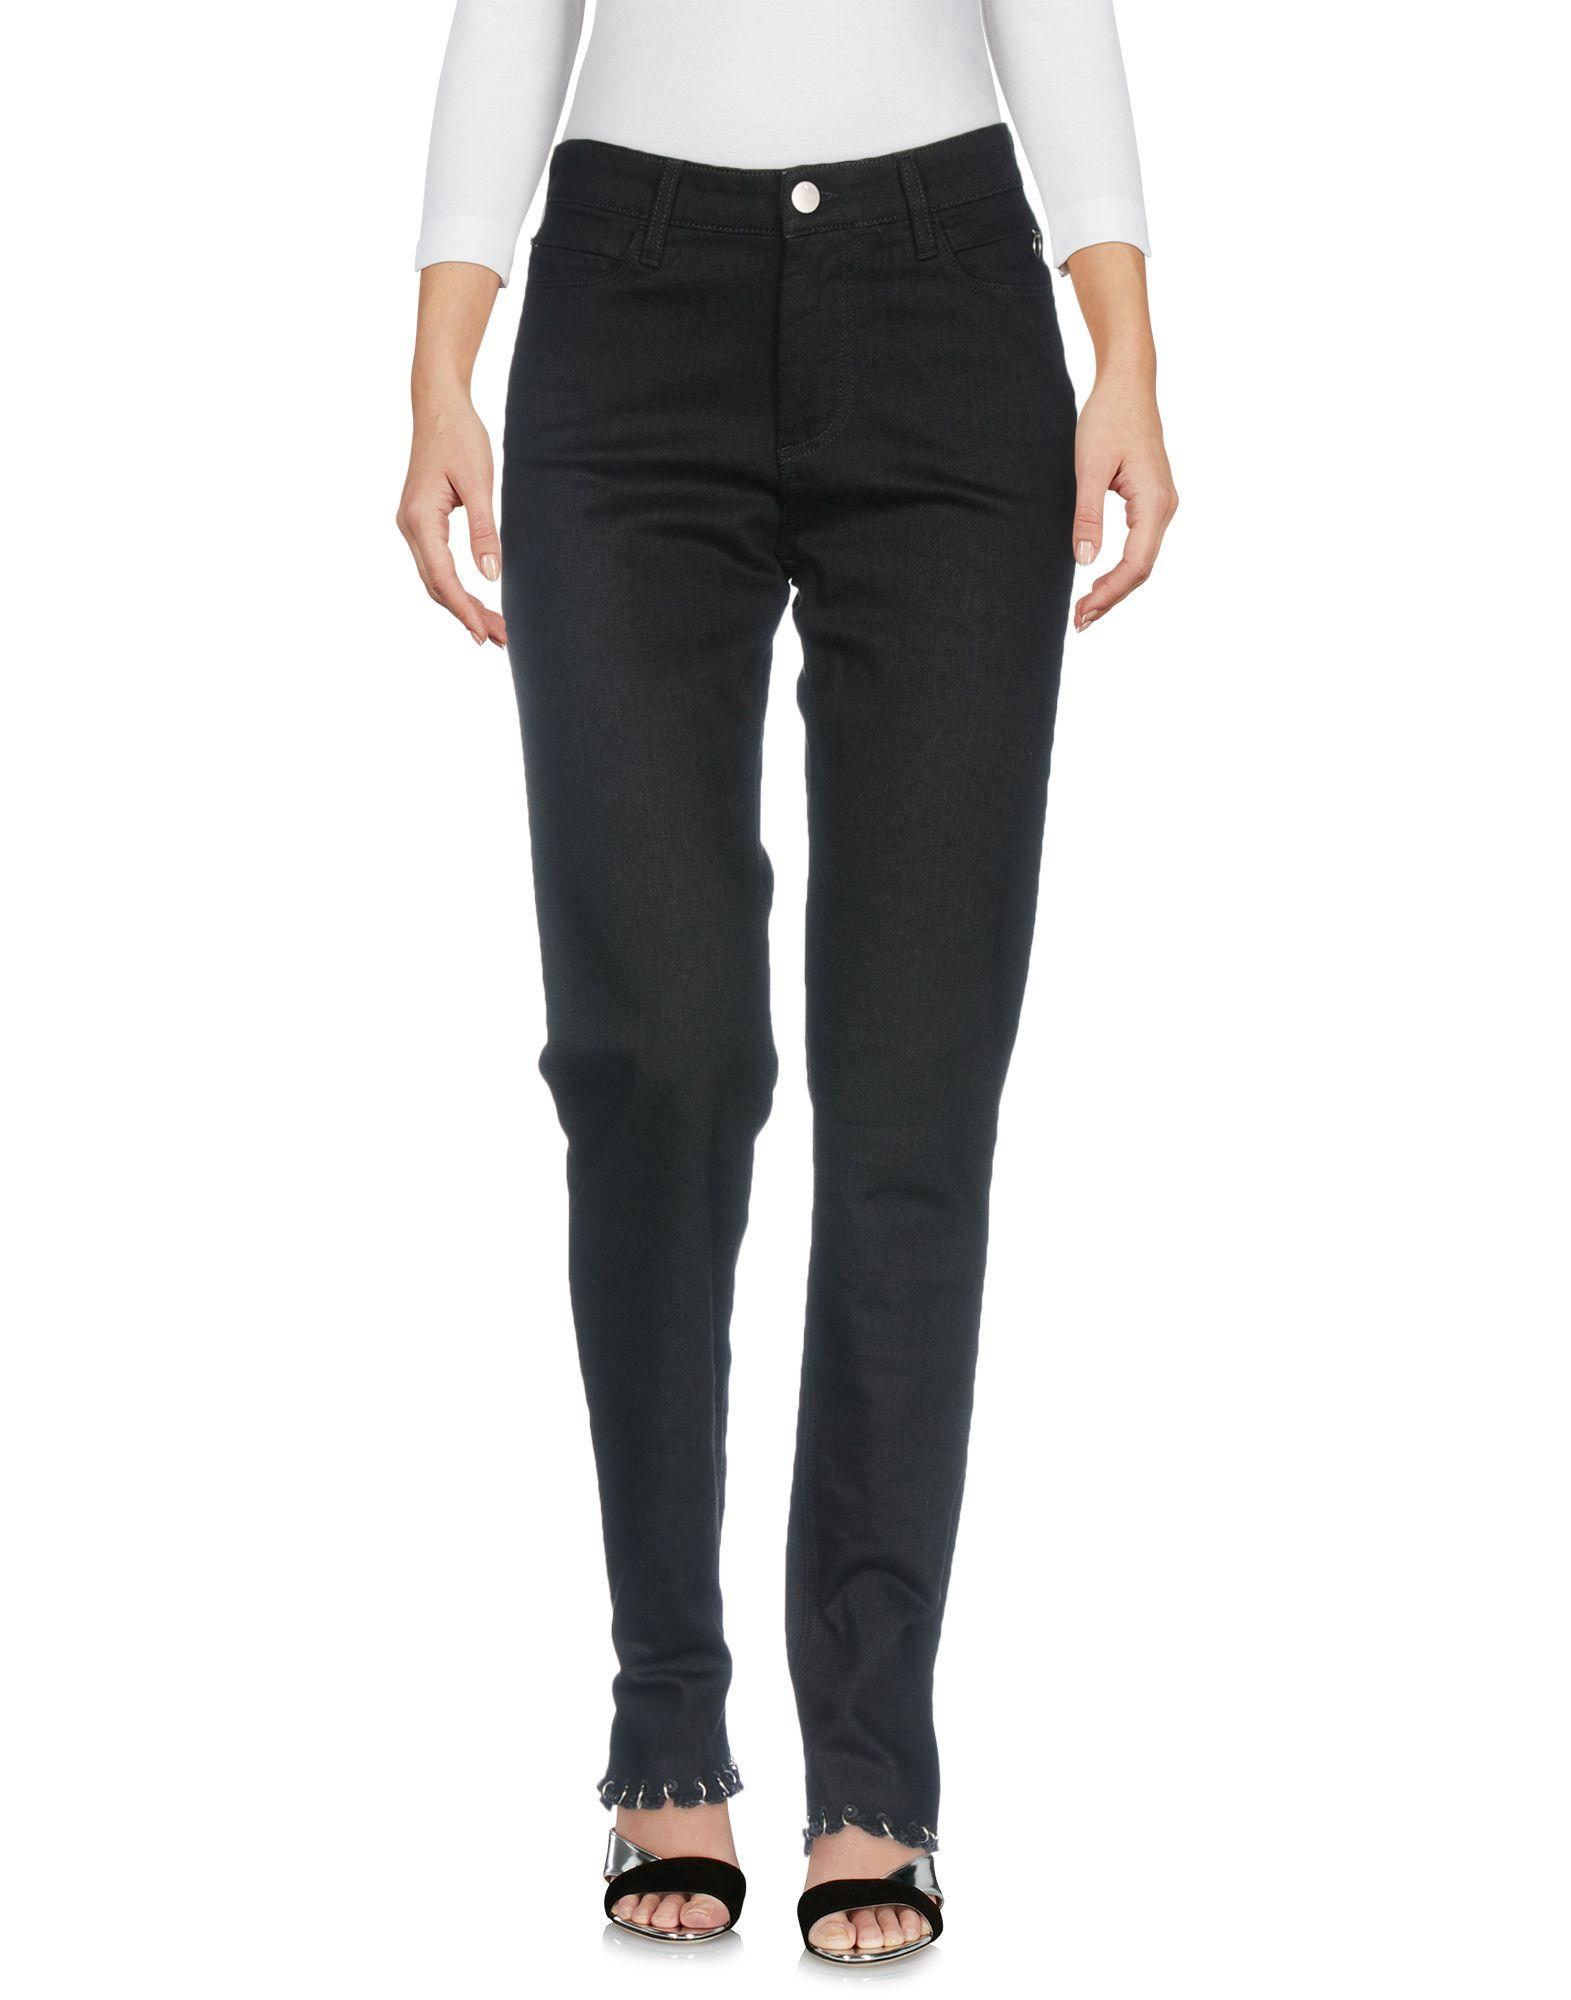 Alyx Denim Pants In Black